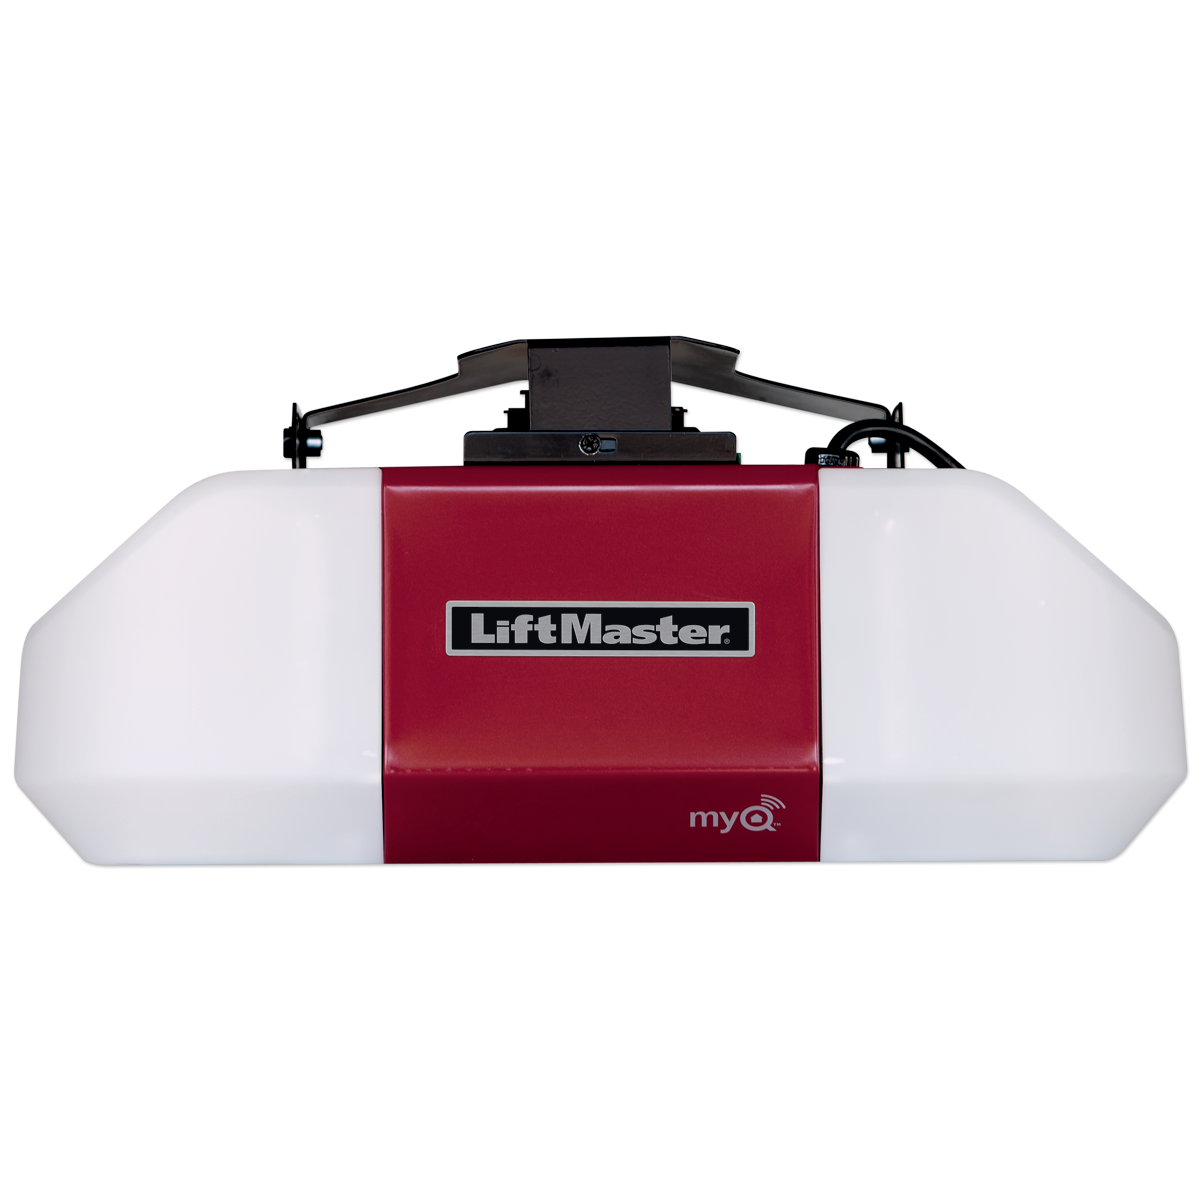 Liftmaster 8587w 3 4 Hp Ac Chain Drive Operator 8 Rail Overhead Door Sales And